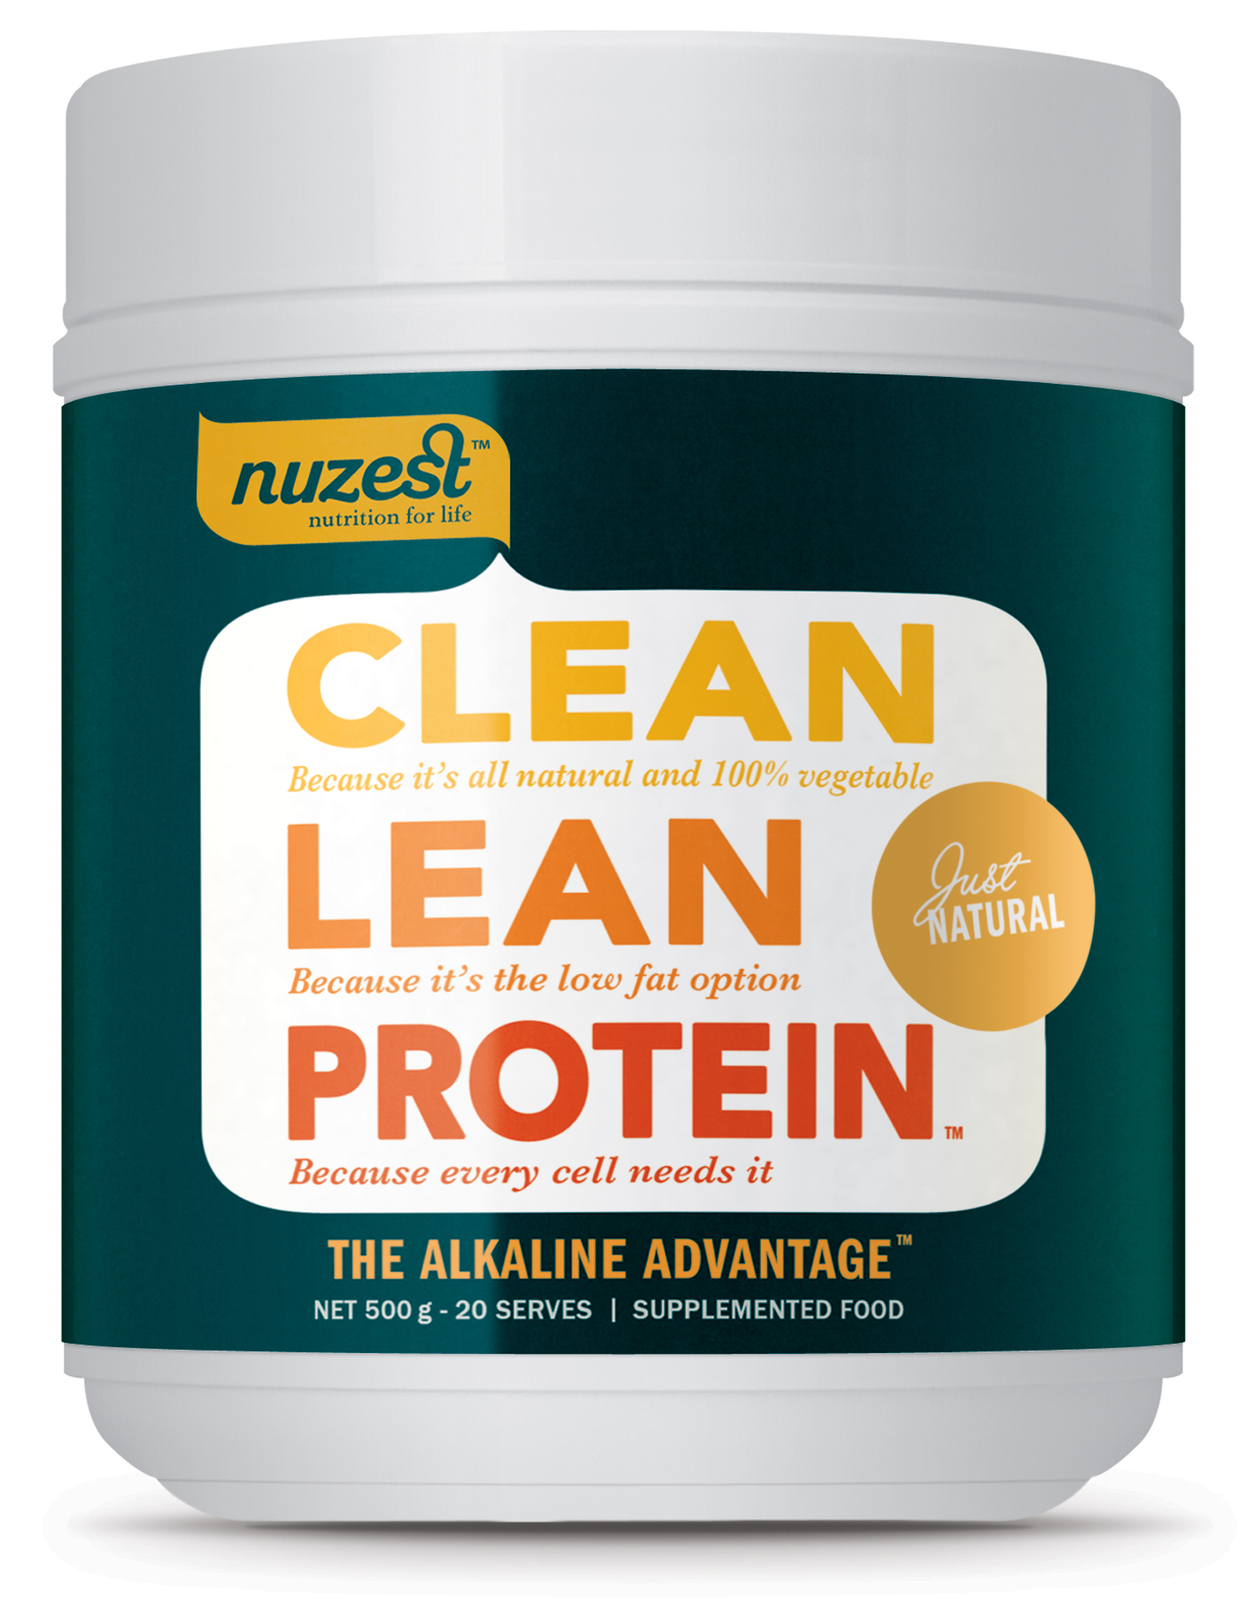 Clean Lean Protein - 500g (Just Natural) image